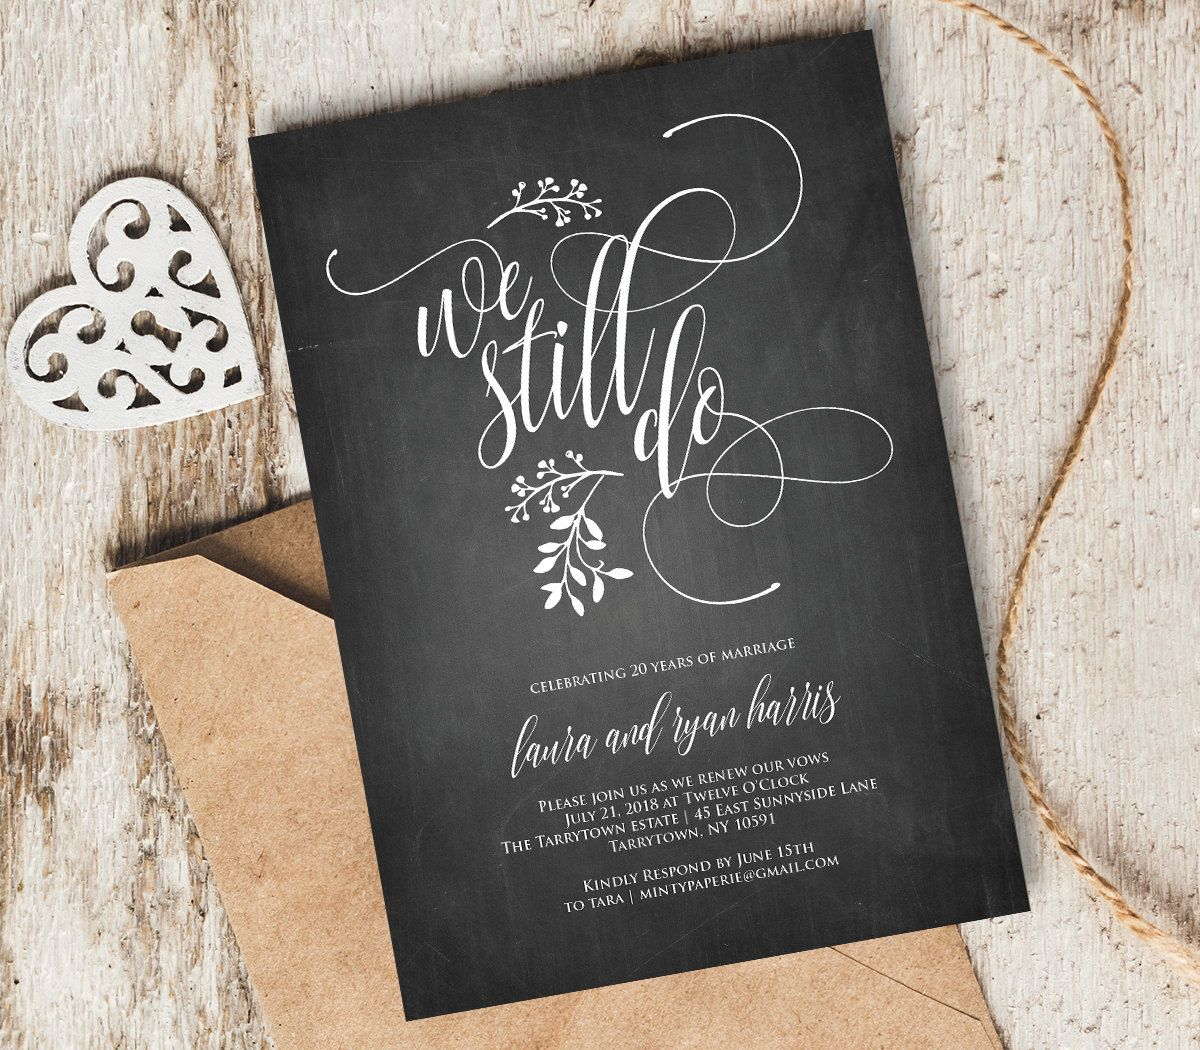 Vow renewal invitation template instant download wedding we still do vow renewal invitation vow renewal wedding invitation wedding anniversary anniversary party invitation renew vows stopboris Choice Image